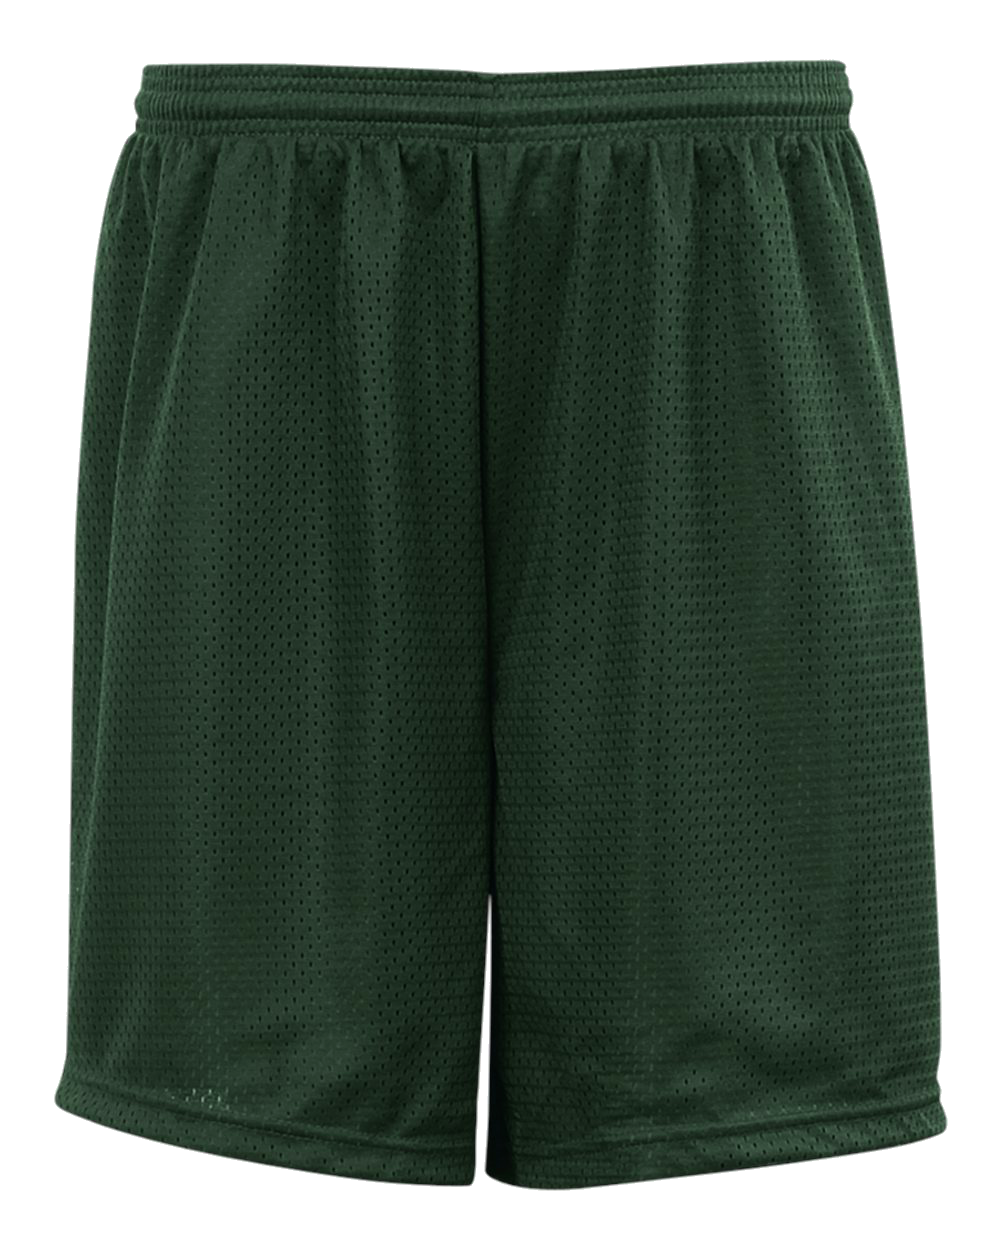 Mesh/Tricot 7 Inch Short - Forest